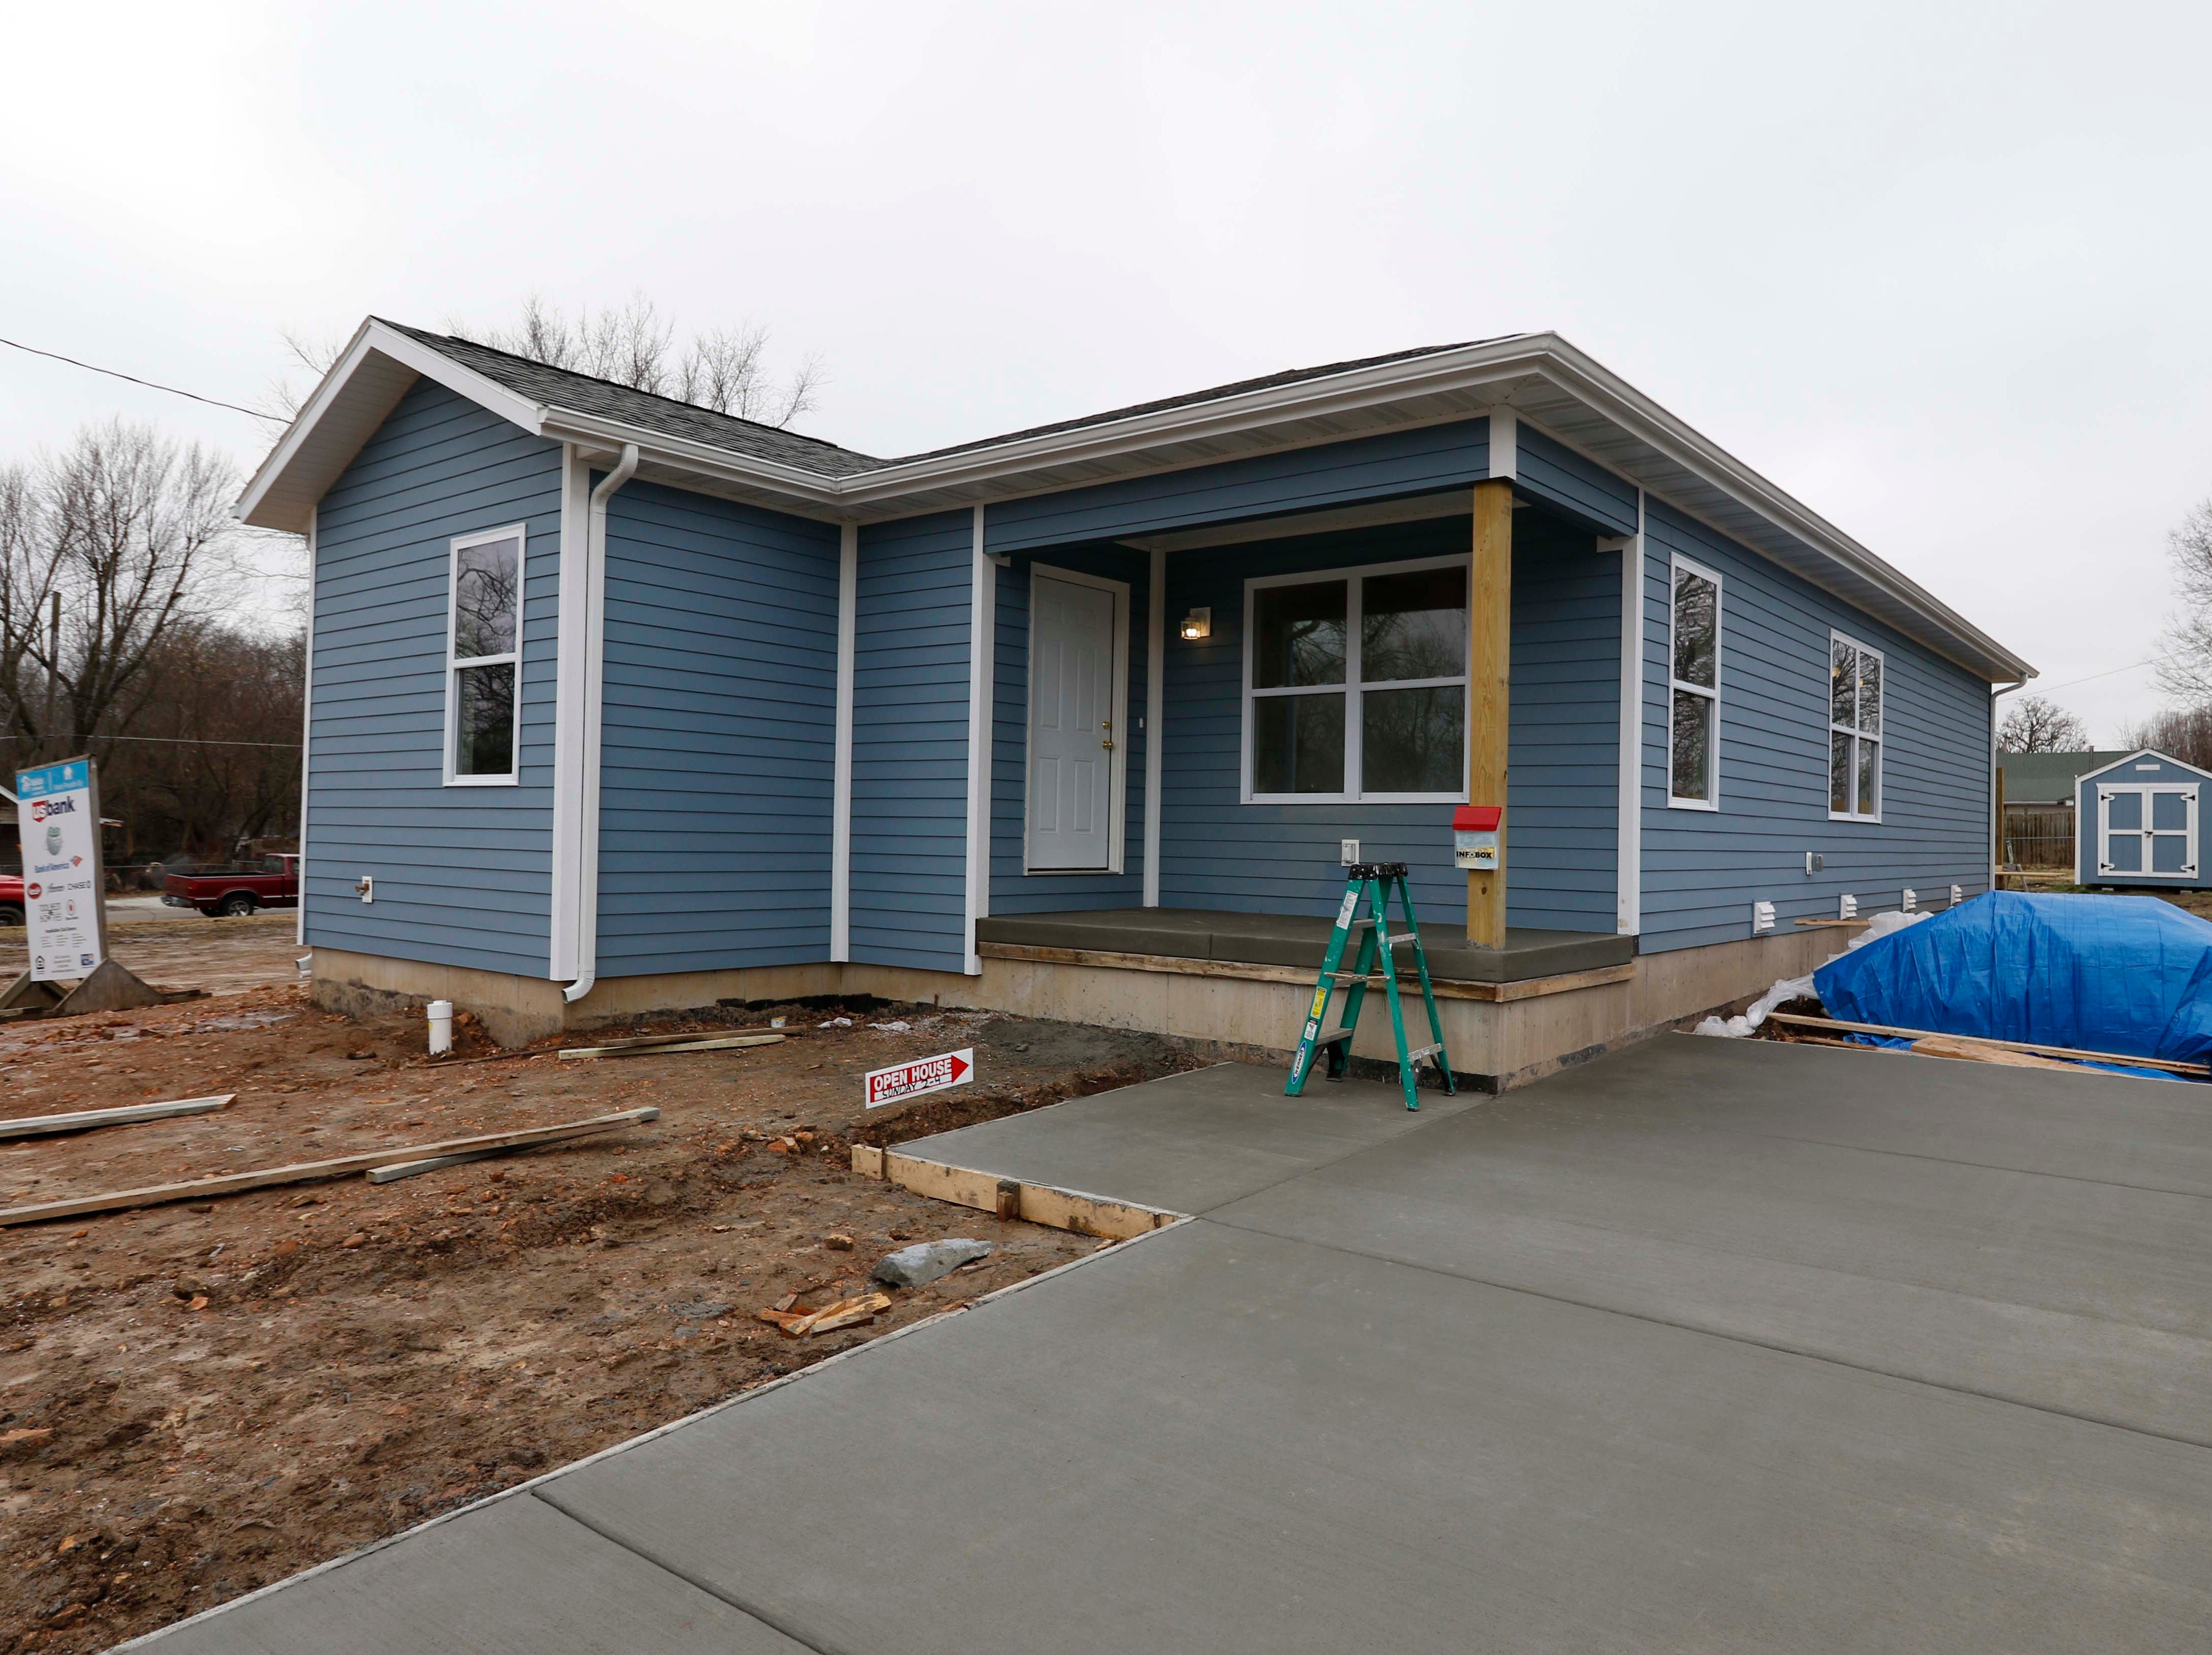 Images from the new Habitat for Humanity house on North Main in Springfield on Jan. 18, 2019.